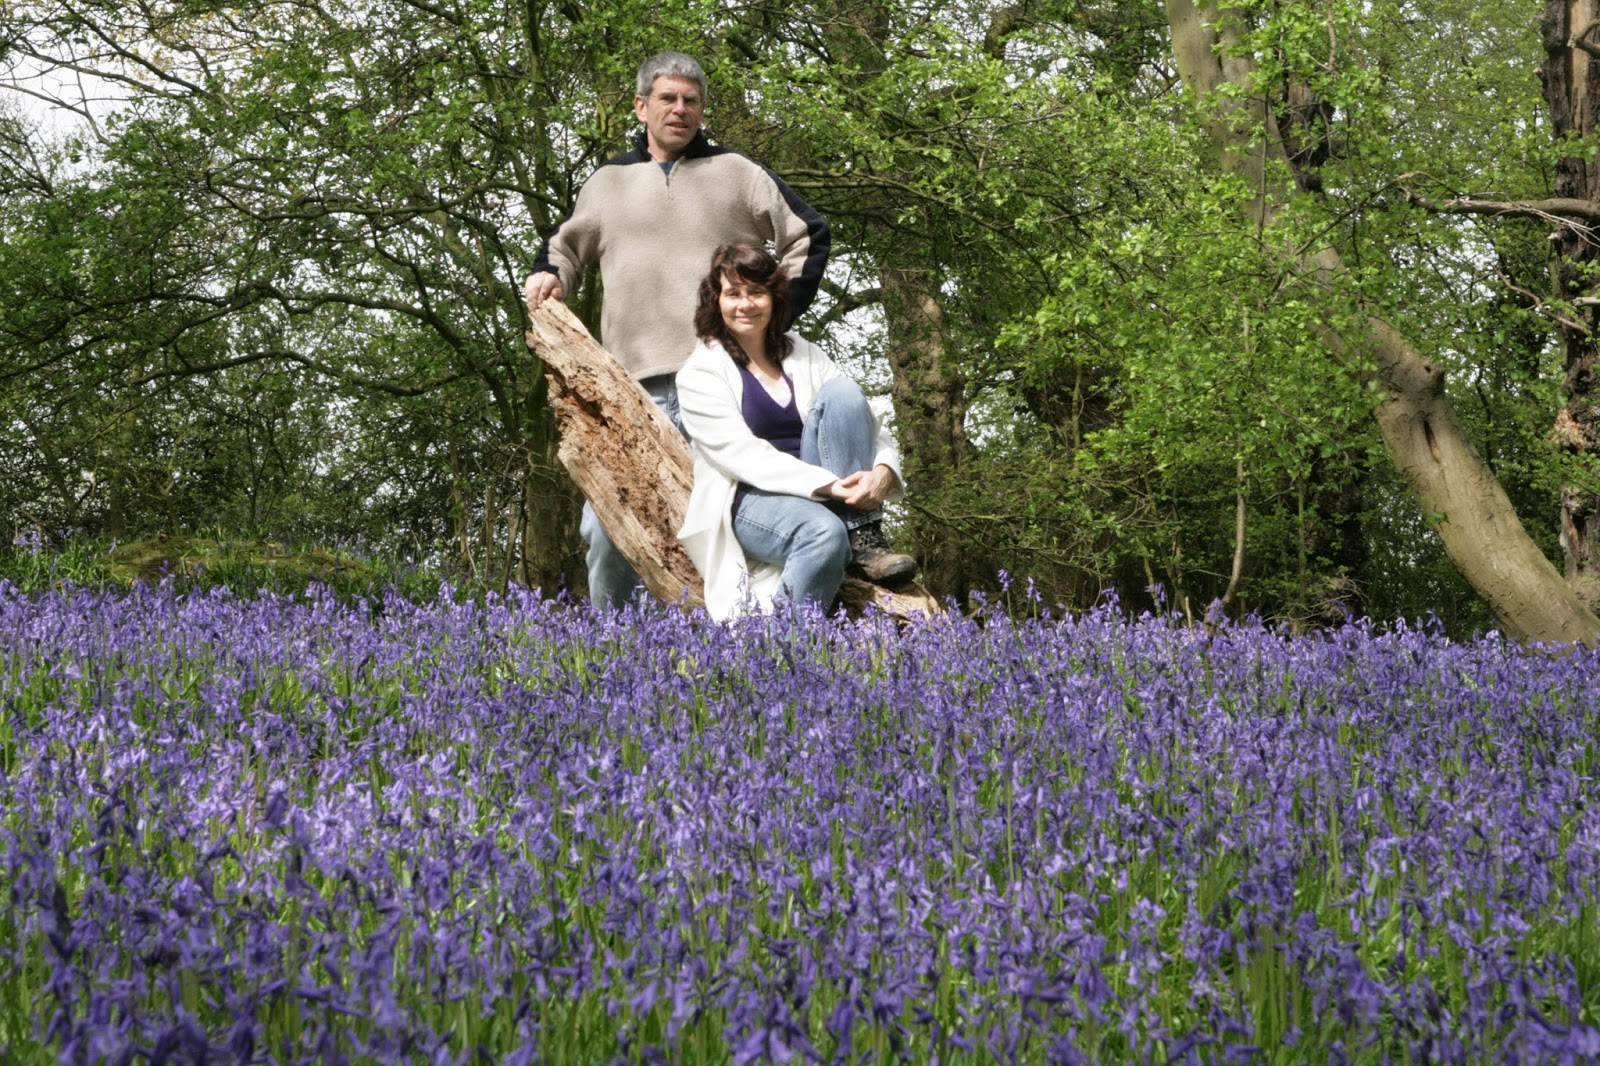 An image from 20 years ago when Is This Mutton blogger Gail Hanlon and husband first took photos in a secret bluebell wood